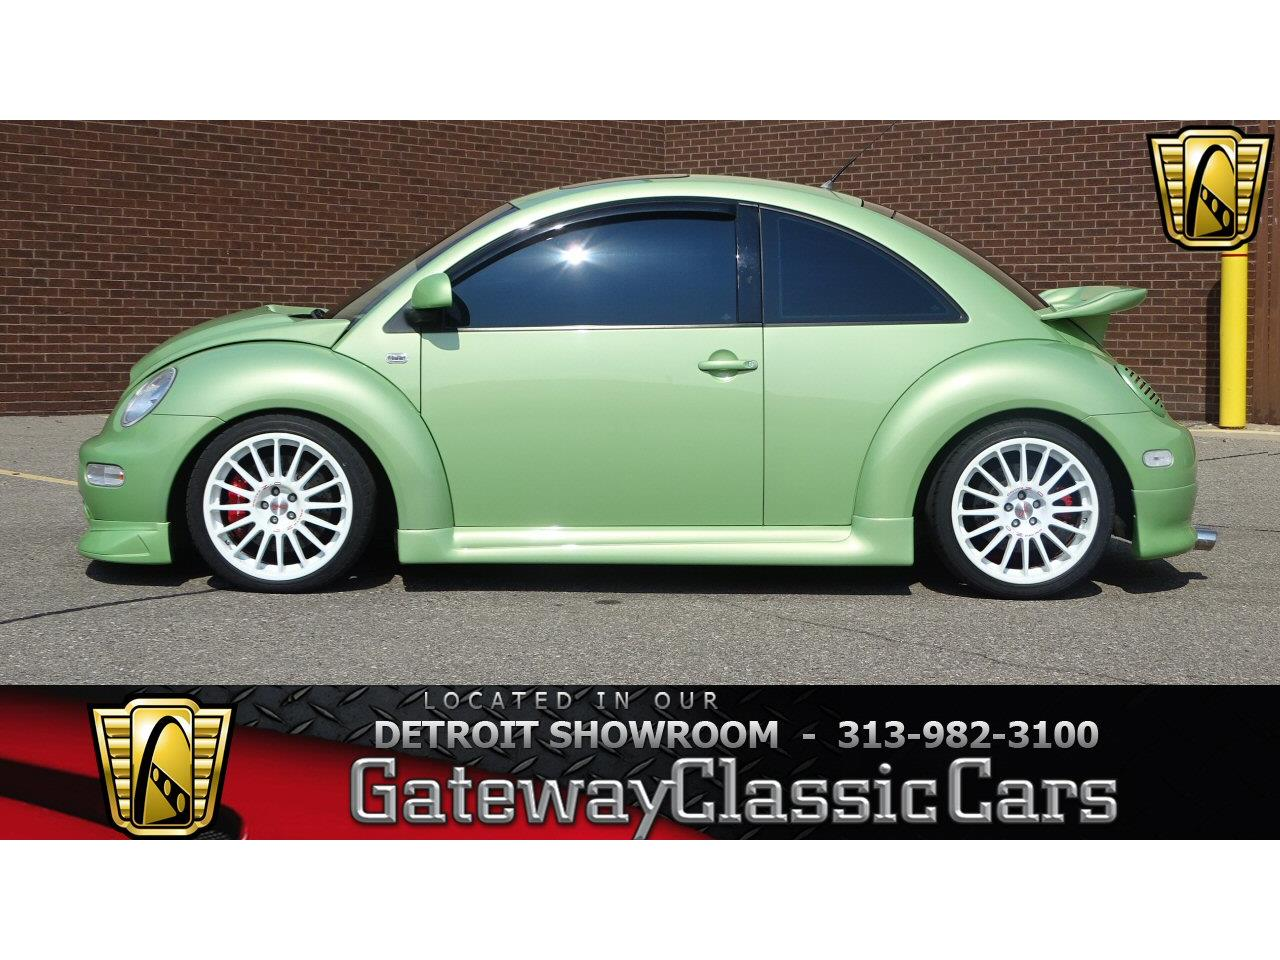 99 Beetle Schematic Diagram 1970 Vw Wiring 1999 Volkswagen For Sale Classiccars Com